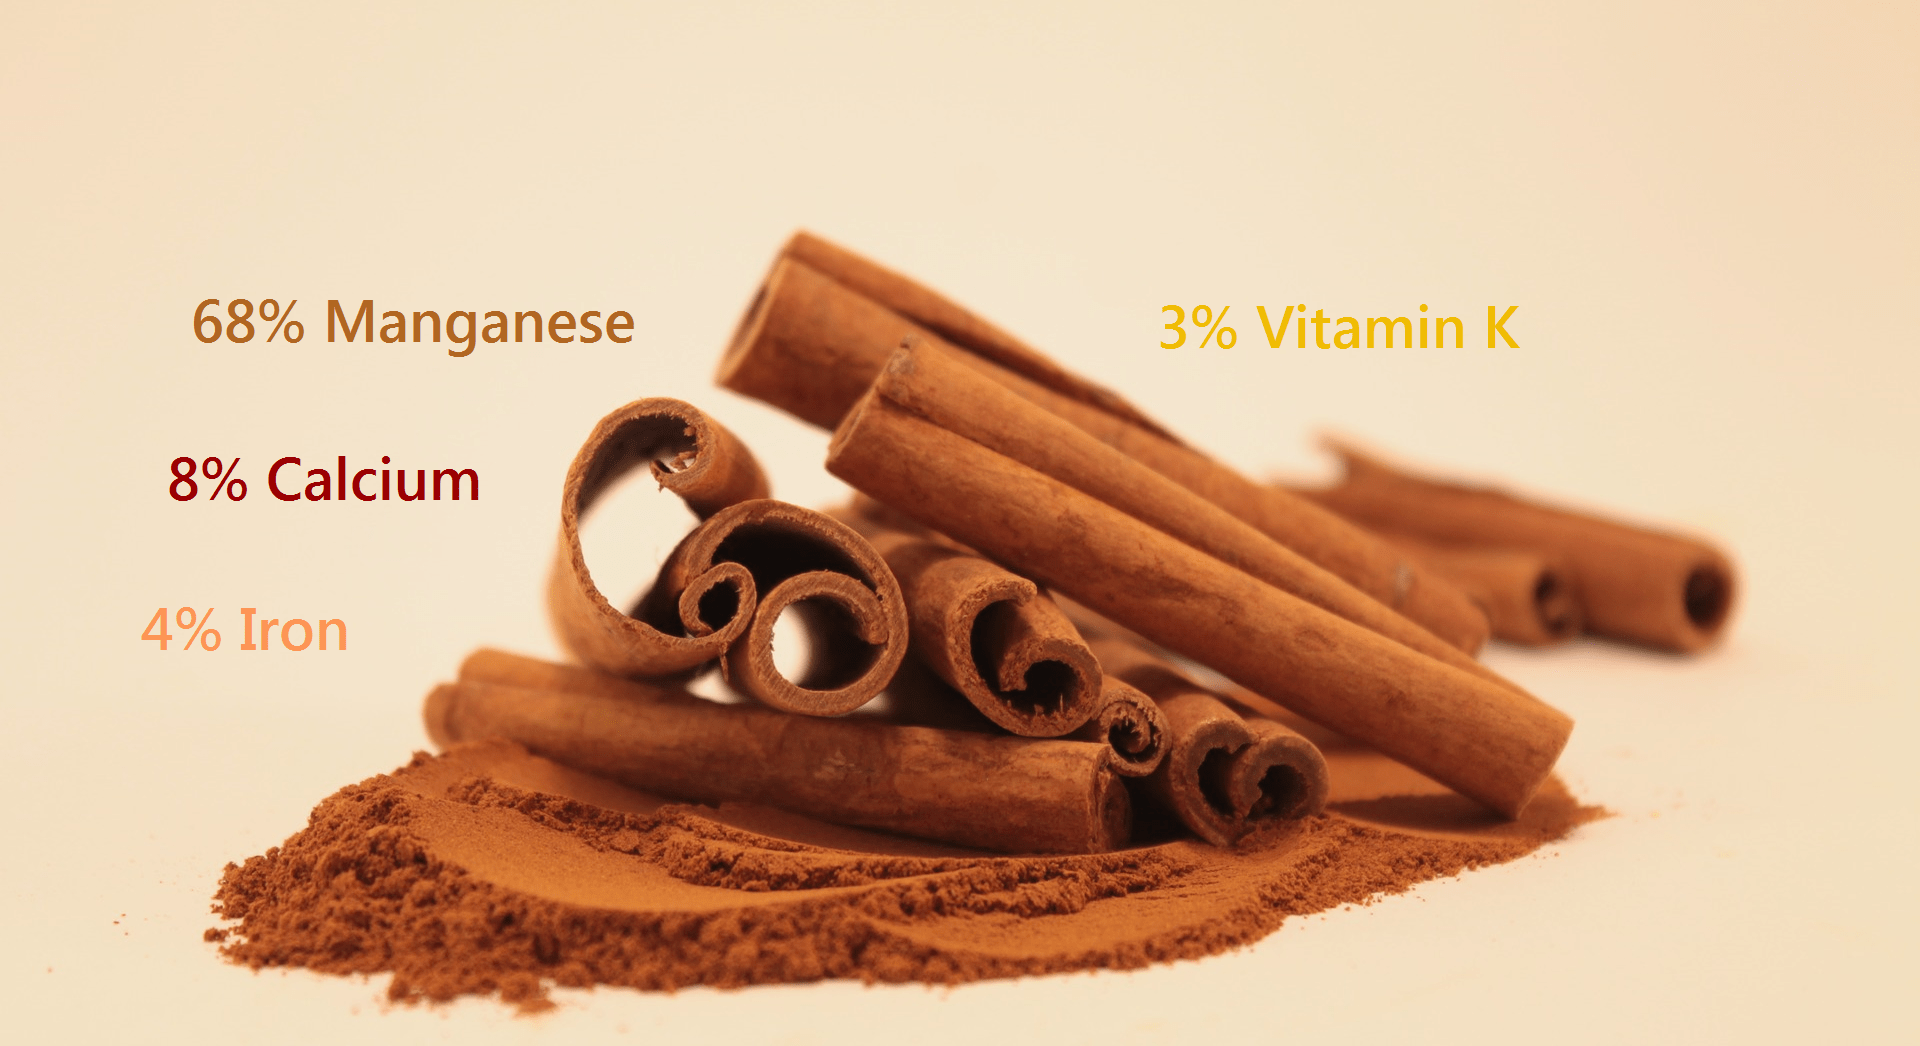 Cinnamon sticks with texts of its nutrients